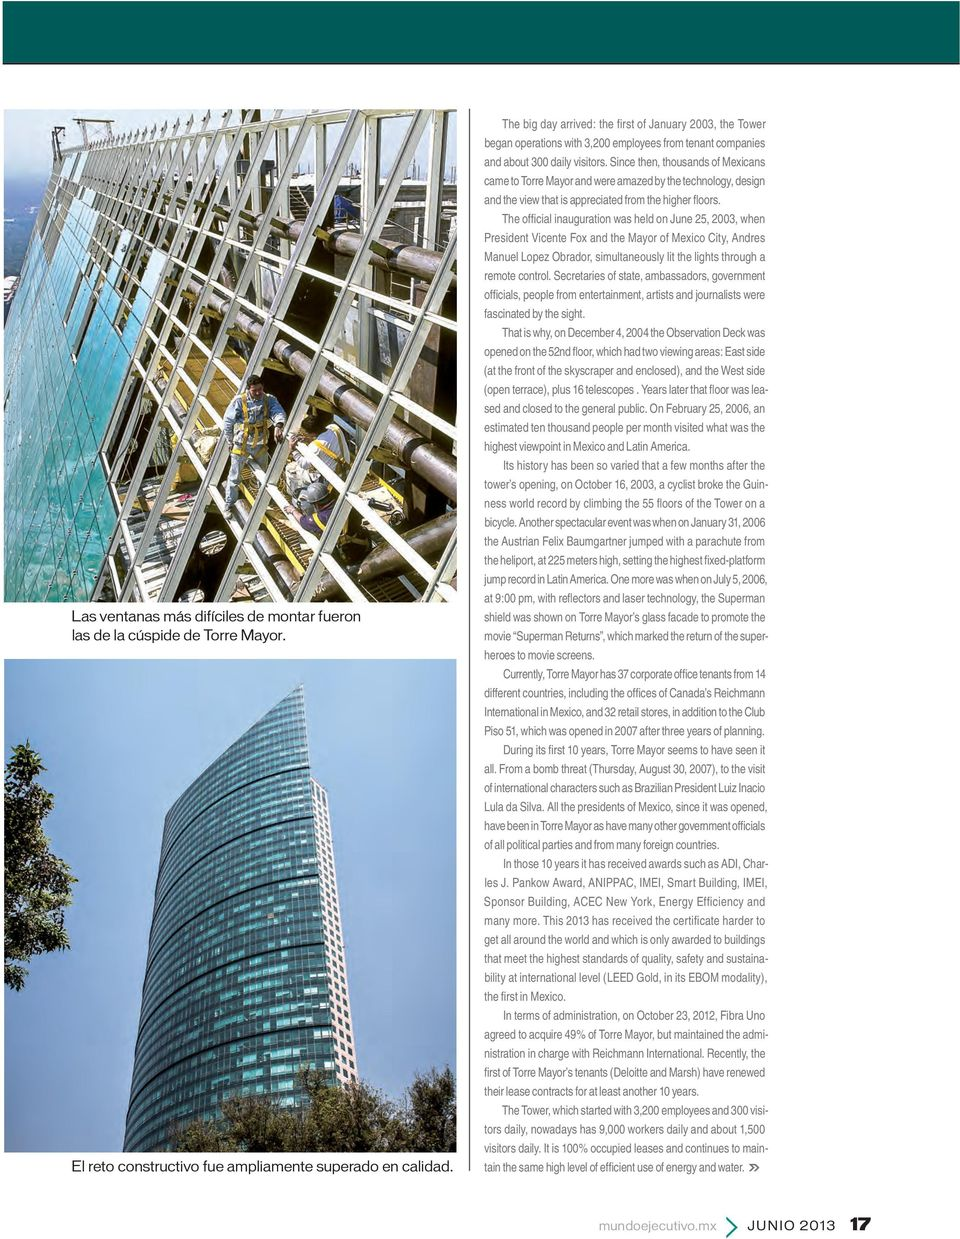 Since then, thousands of Mexicans came to Torre Mayor and were amazed by the technology, design and the view that is appreciated from the higher floors.